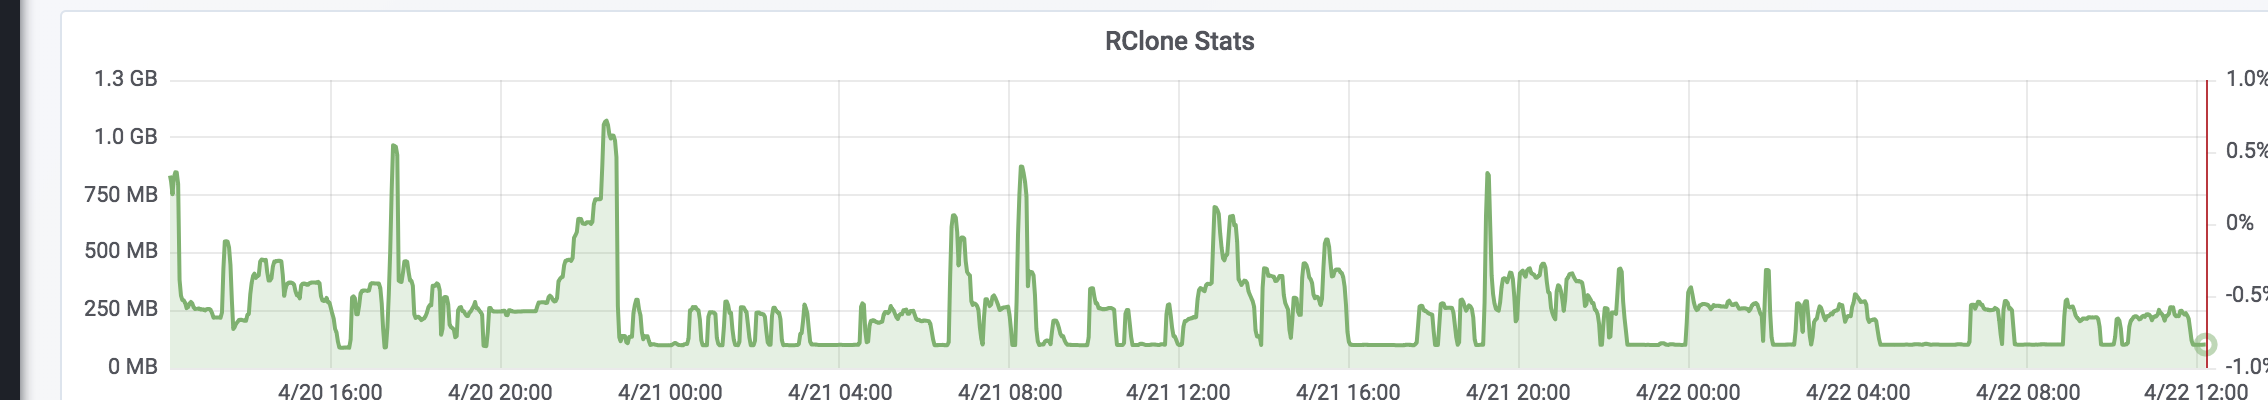 rclone still using too much memory · Issue #2200 · rclone/rclone